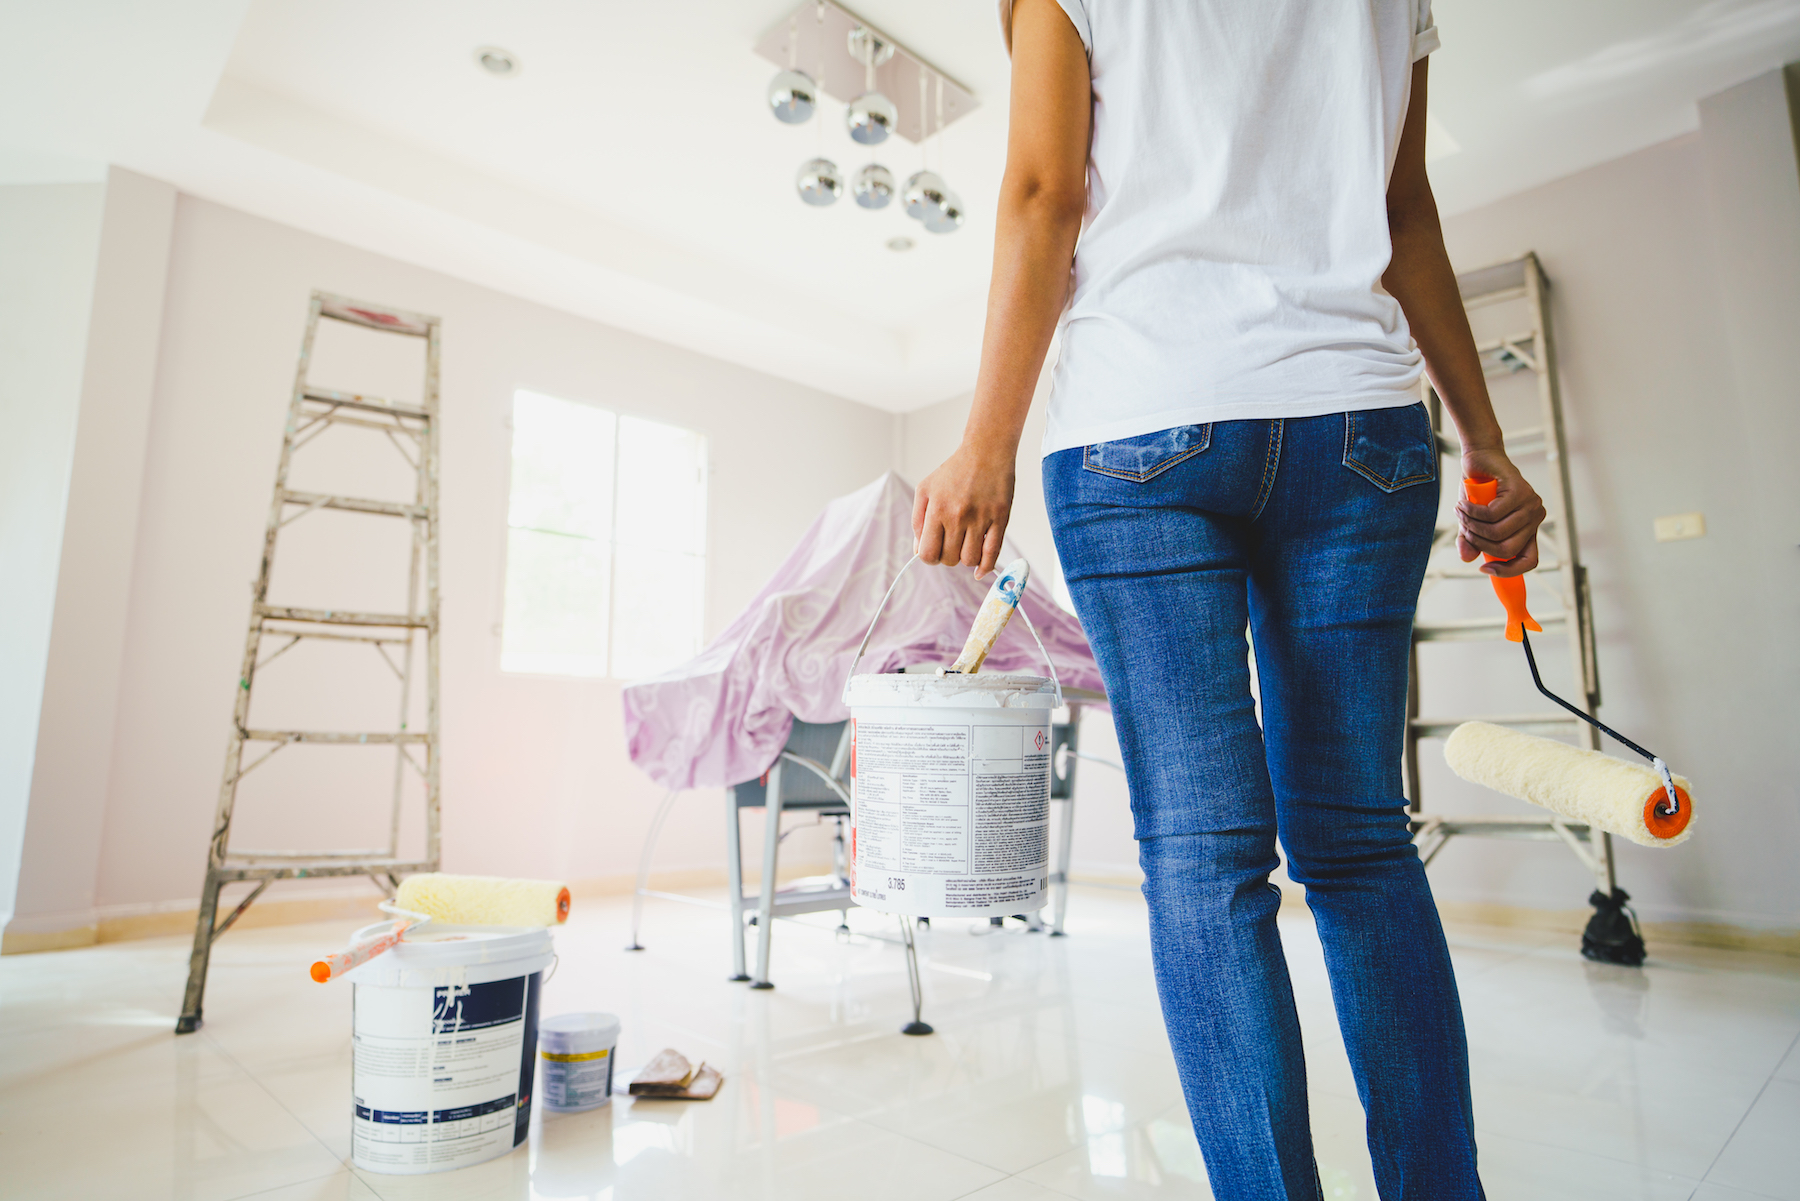 Women preparing to paint a room